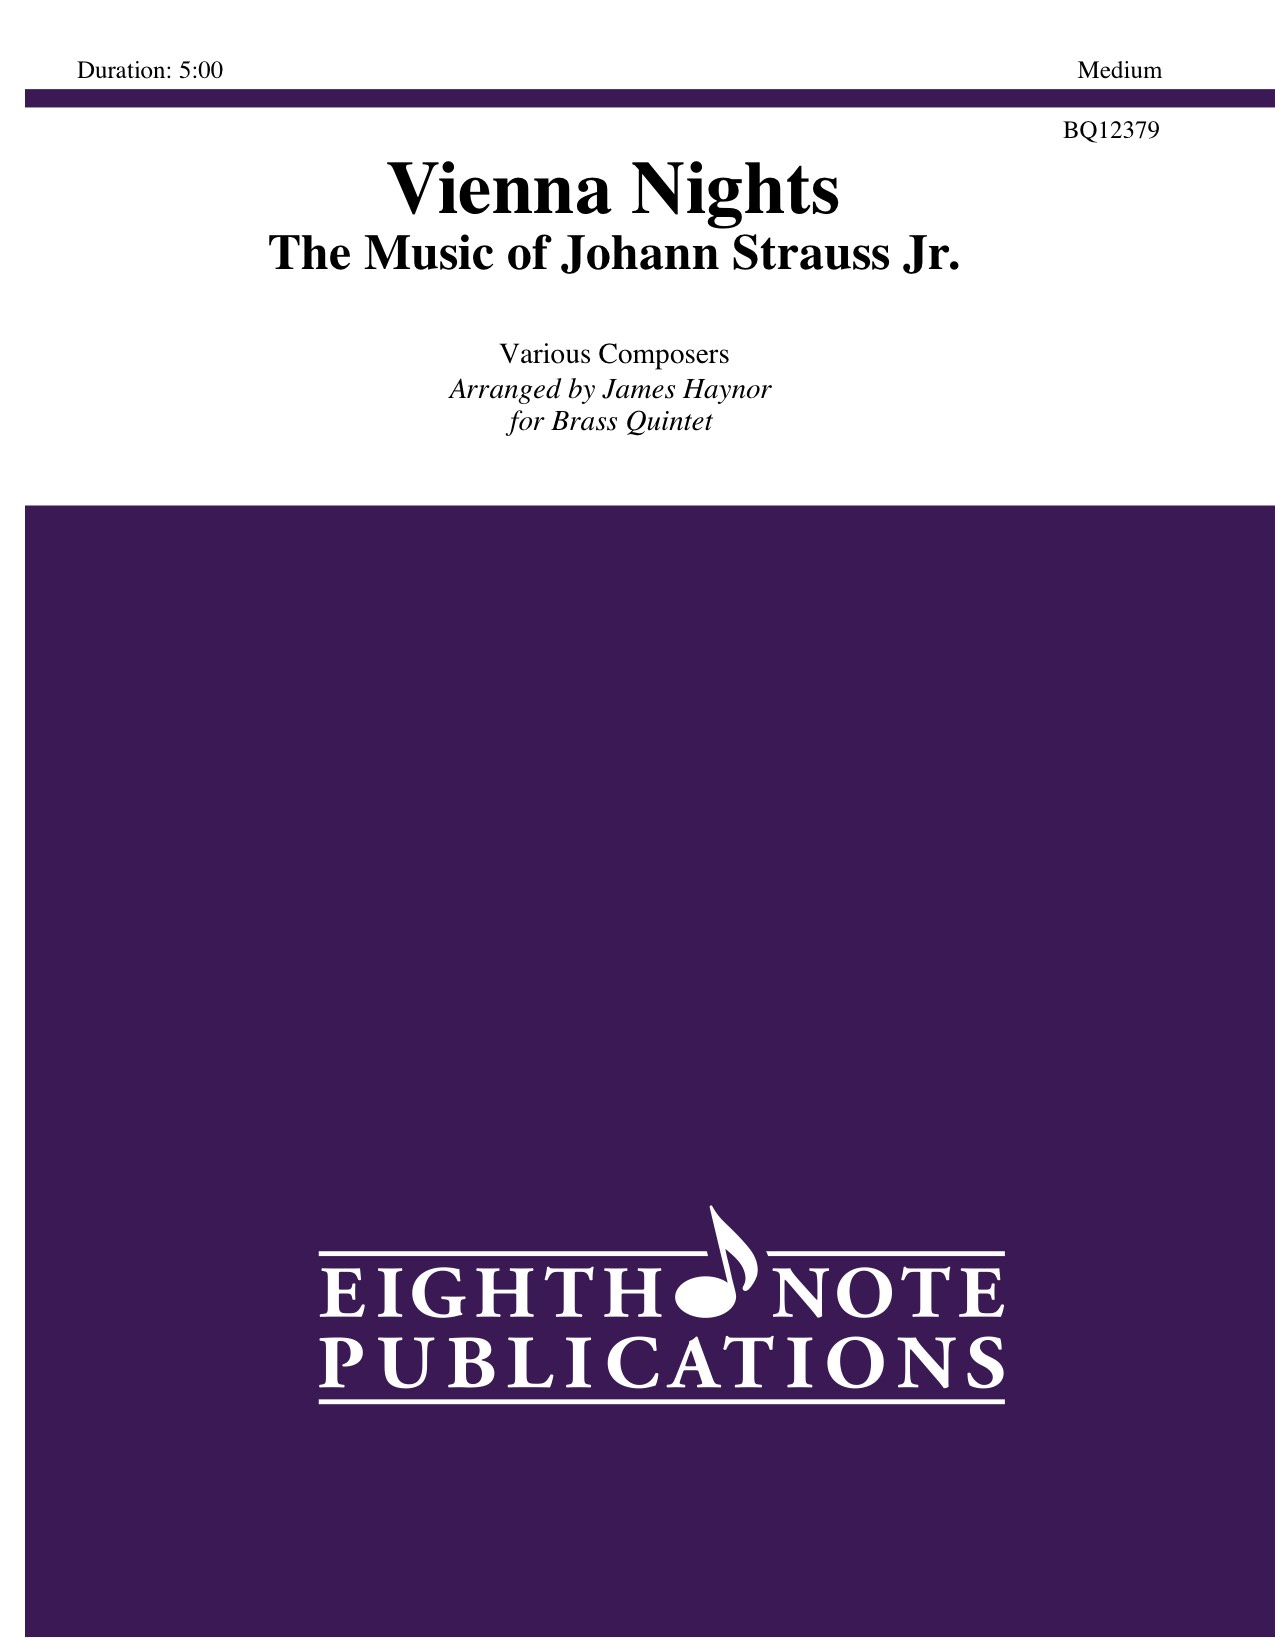 Vienna Nights - The Music of Johann Strauss Jr. - Various Composers